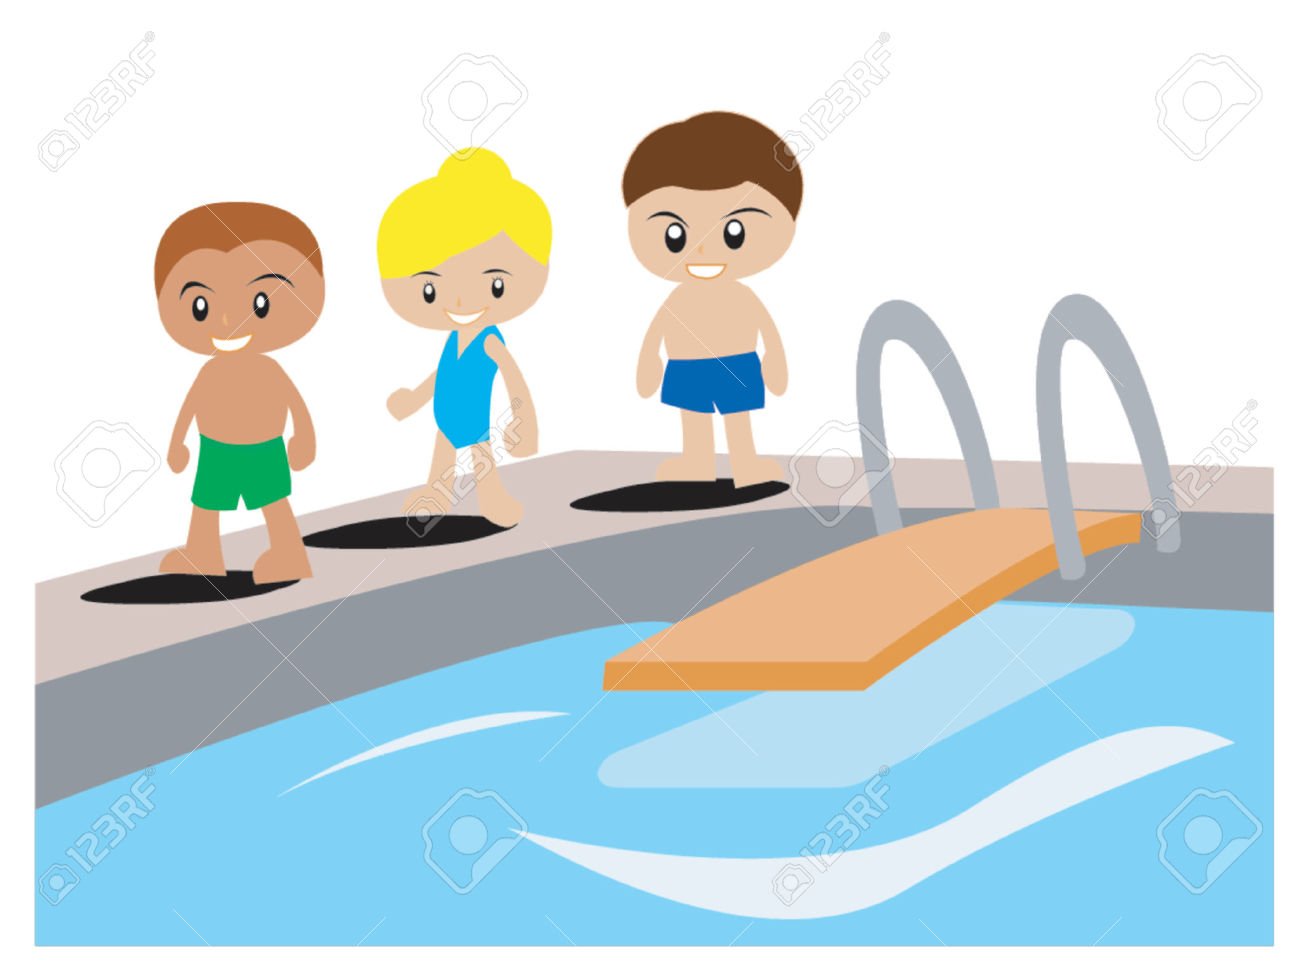 Clip Art. Swimming Pool Clipart. Stonetire Free Clip Art Images.